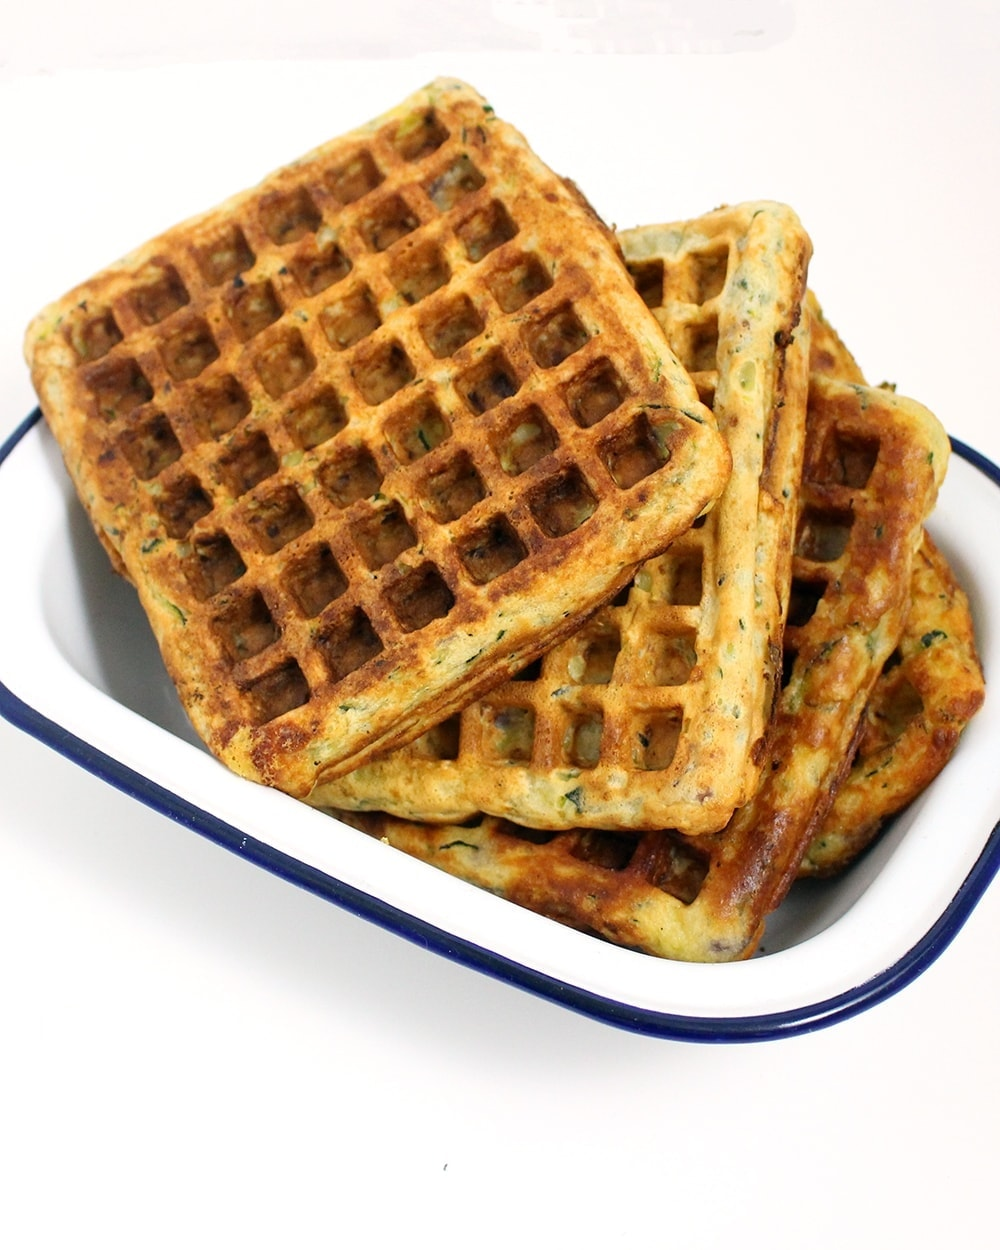 Spicy salmon is the perfect complement to these tasty courgette waffles. Top everything with this super quick, creamy hollandaise sauce!